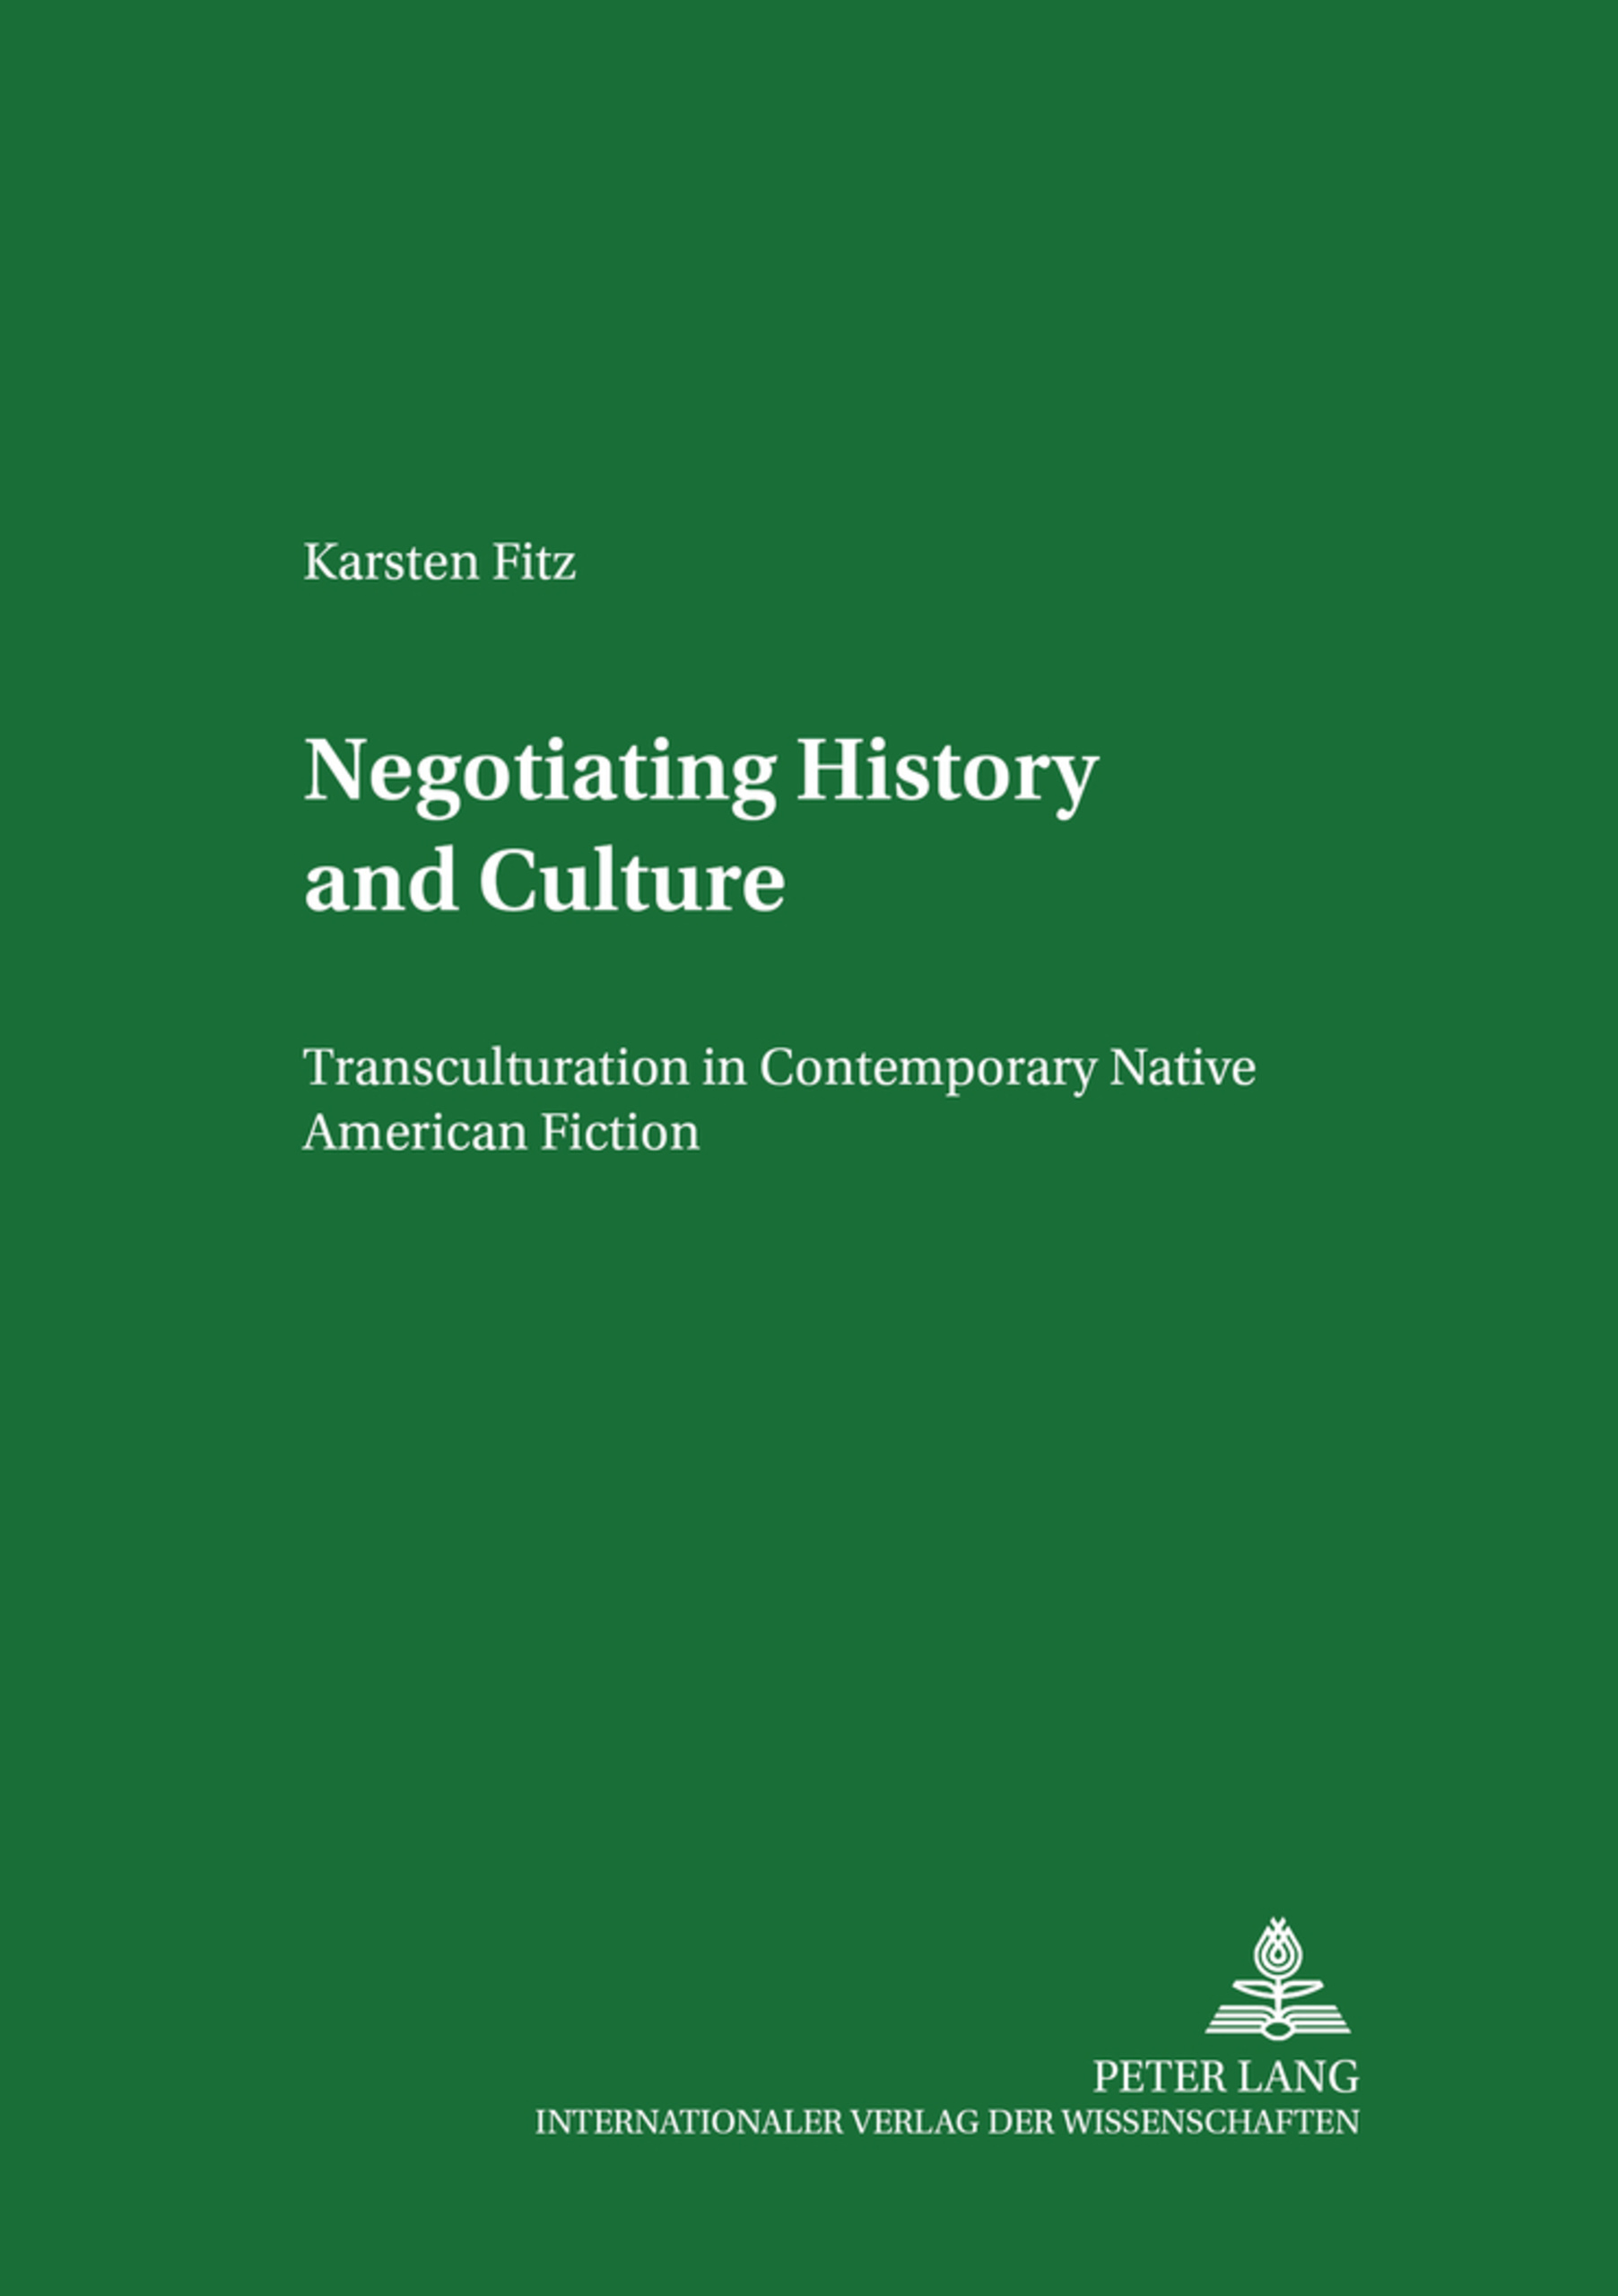 Title: Negotiating History and Culture